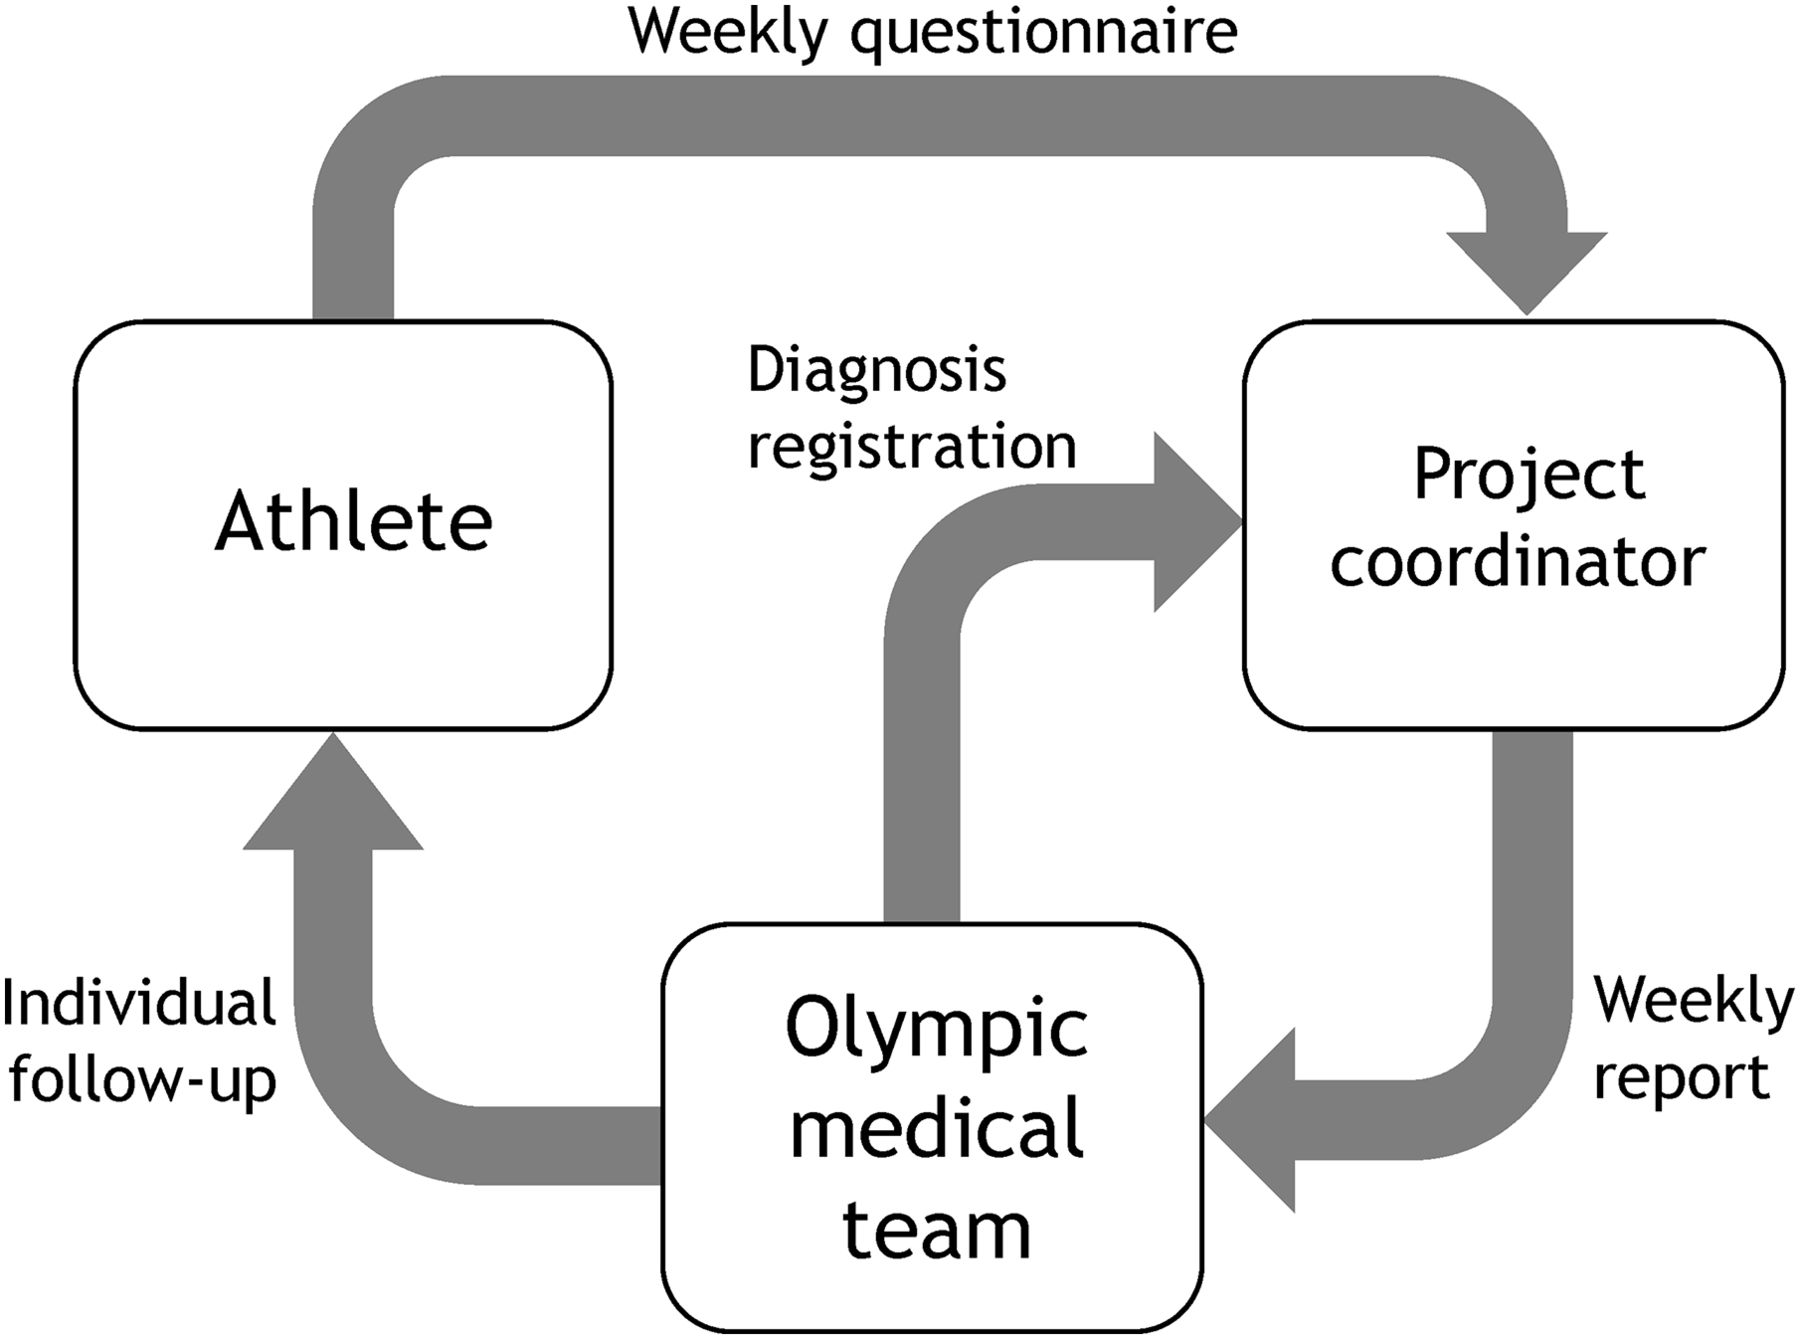 The Oslo Sports Trauma Research Center questionnaire on